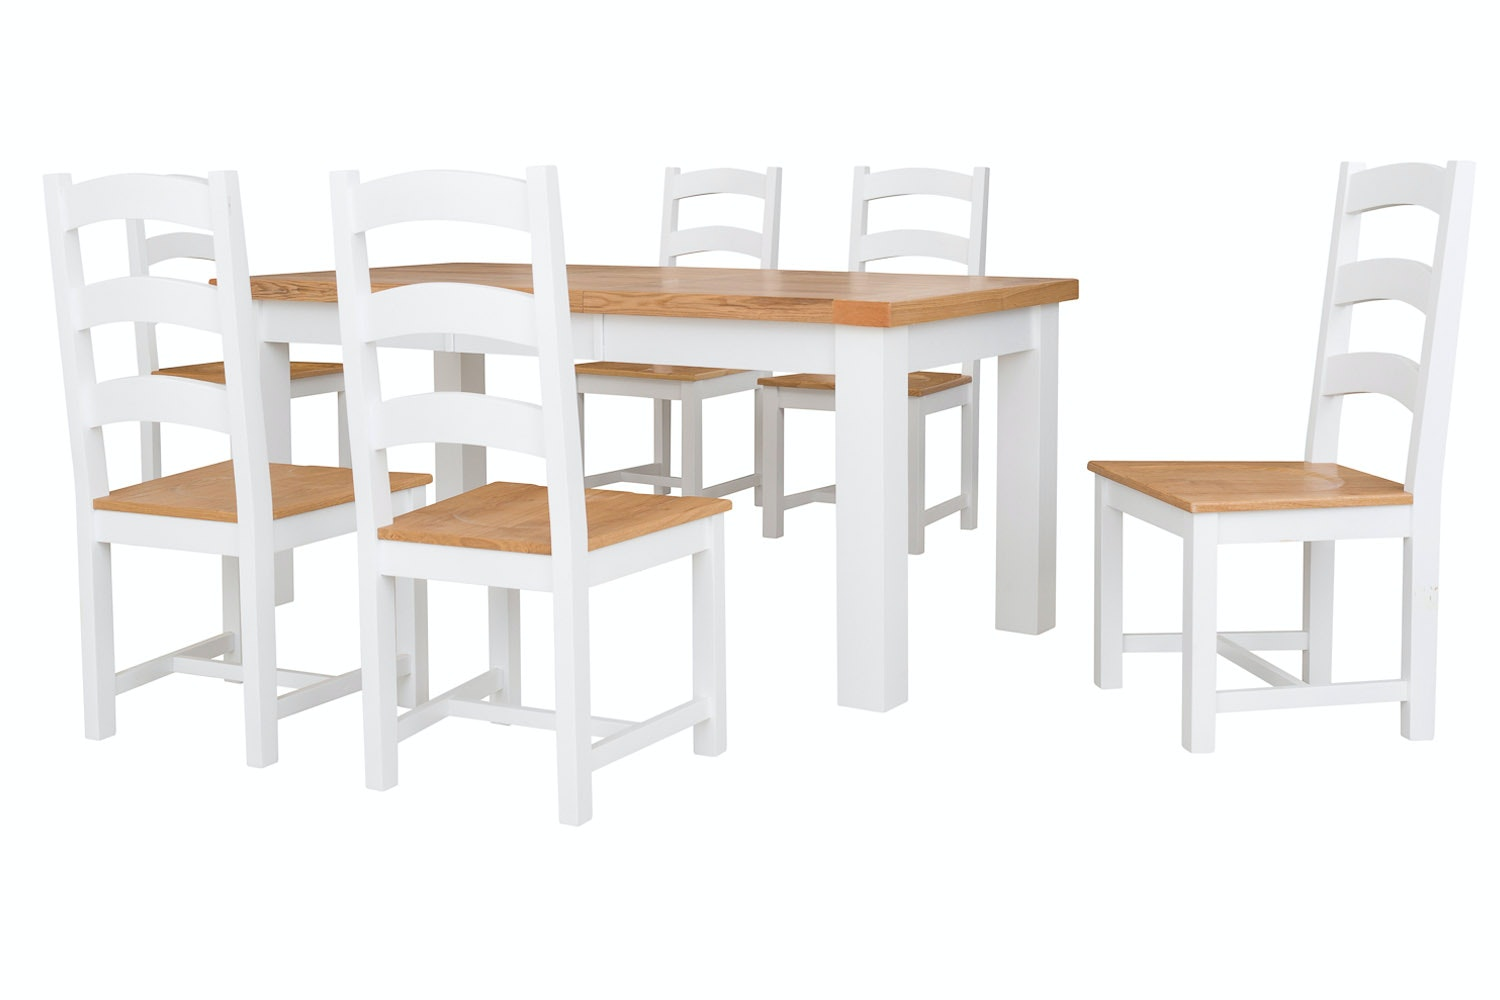 New Haven White 7 Piece Dining Set 140cm Extending Table  : NewHaven1407wht1 from www.harveynorman.ie size 1500 x 1000 jpeg 63kB